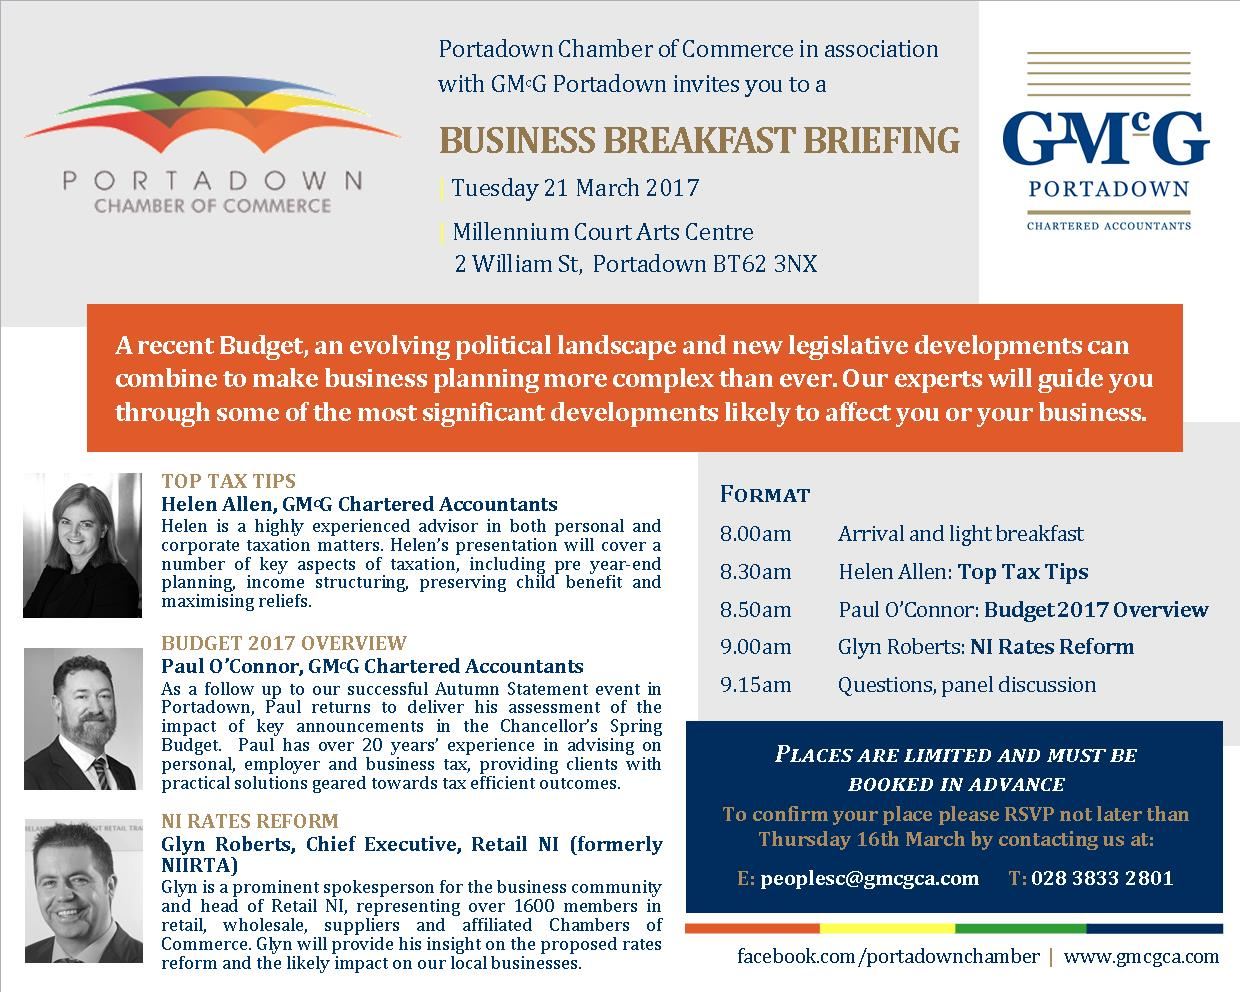 Business Breakfast Briefing Portadown, 21 March 2017